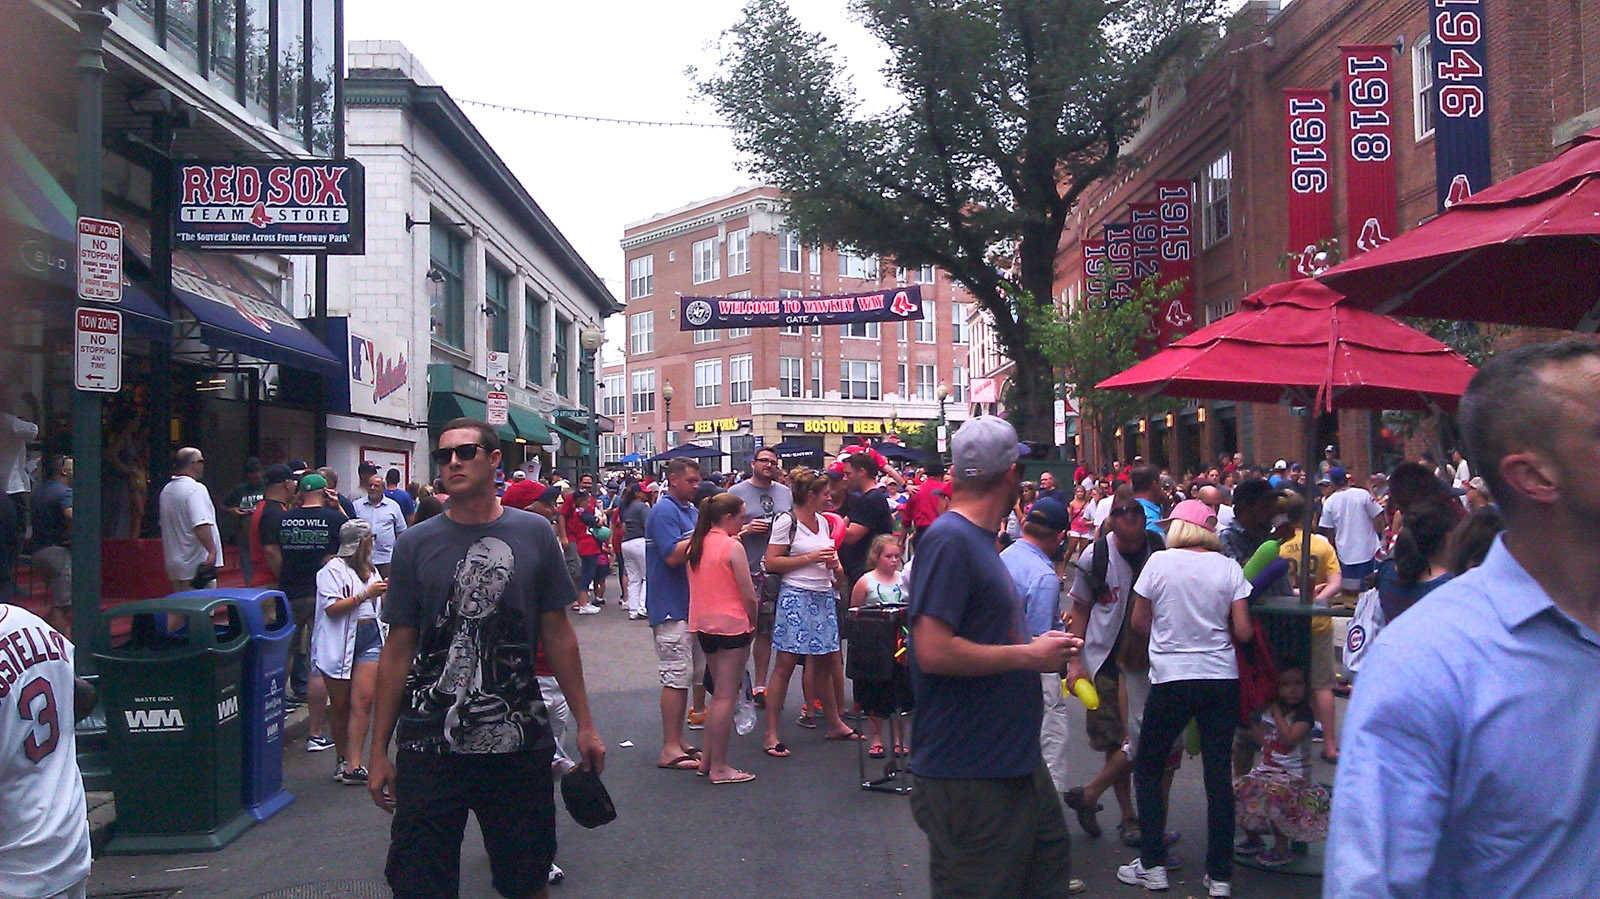 Yawkey Way is a busy spot on game days in Boston as Red Sox fans gather there before and after games.